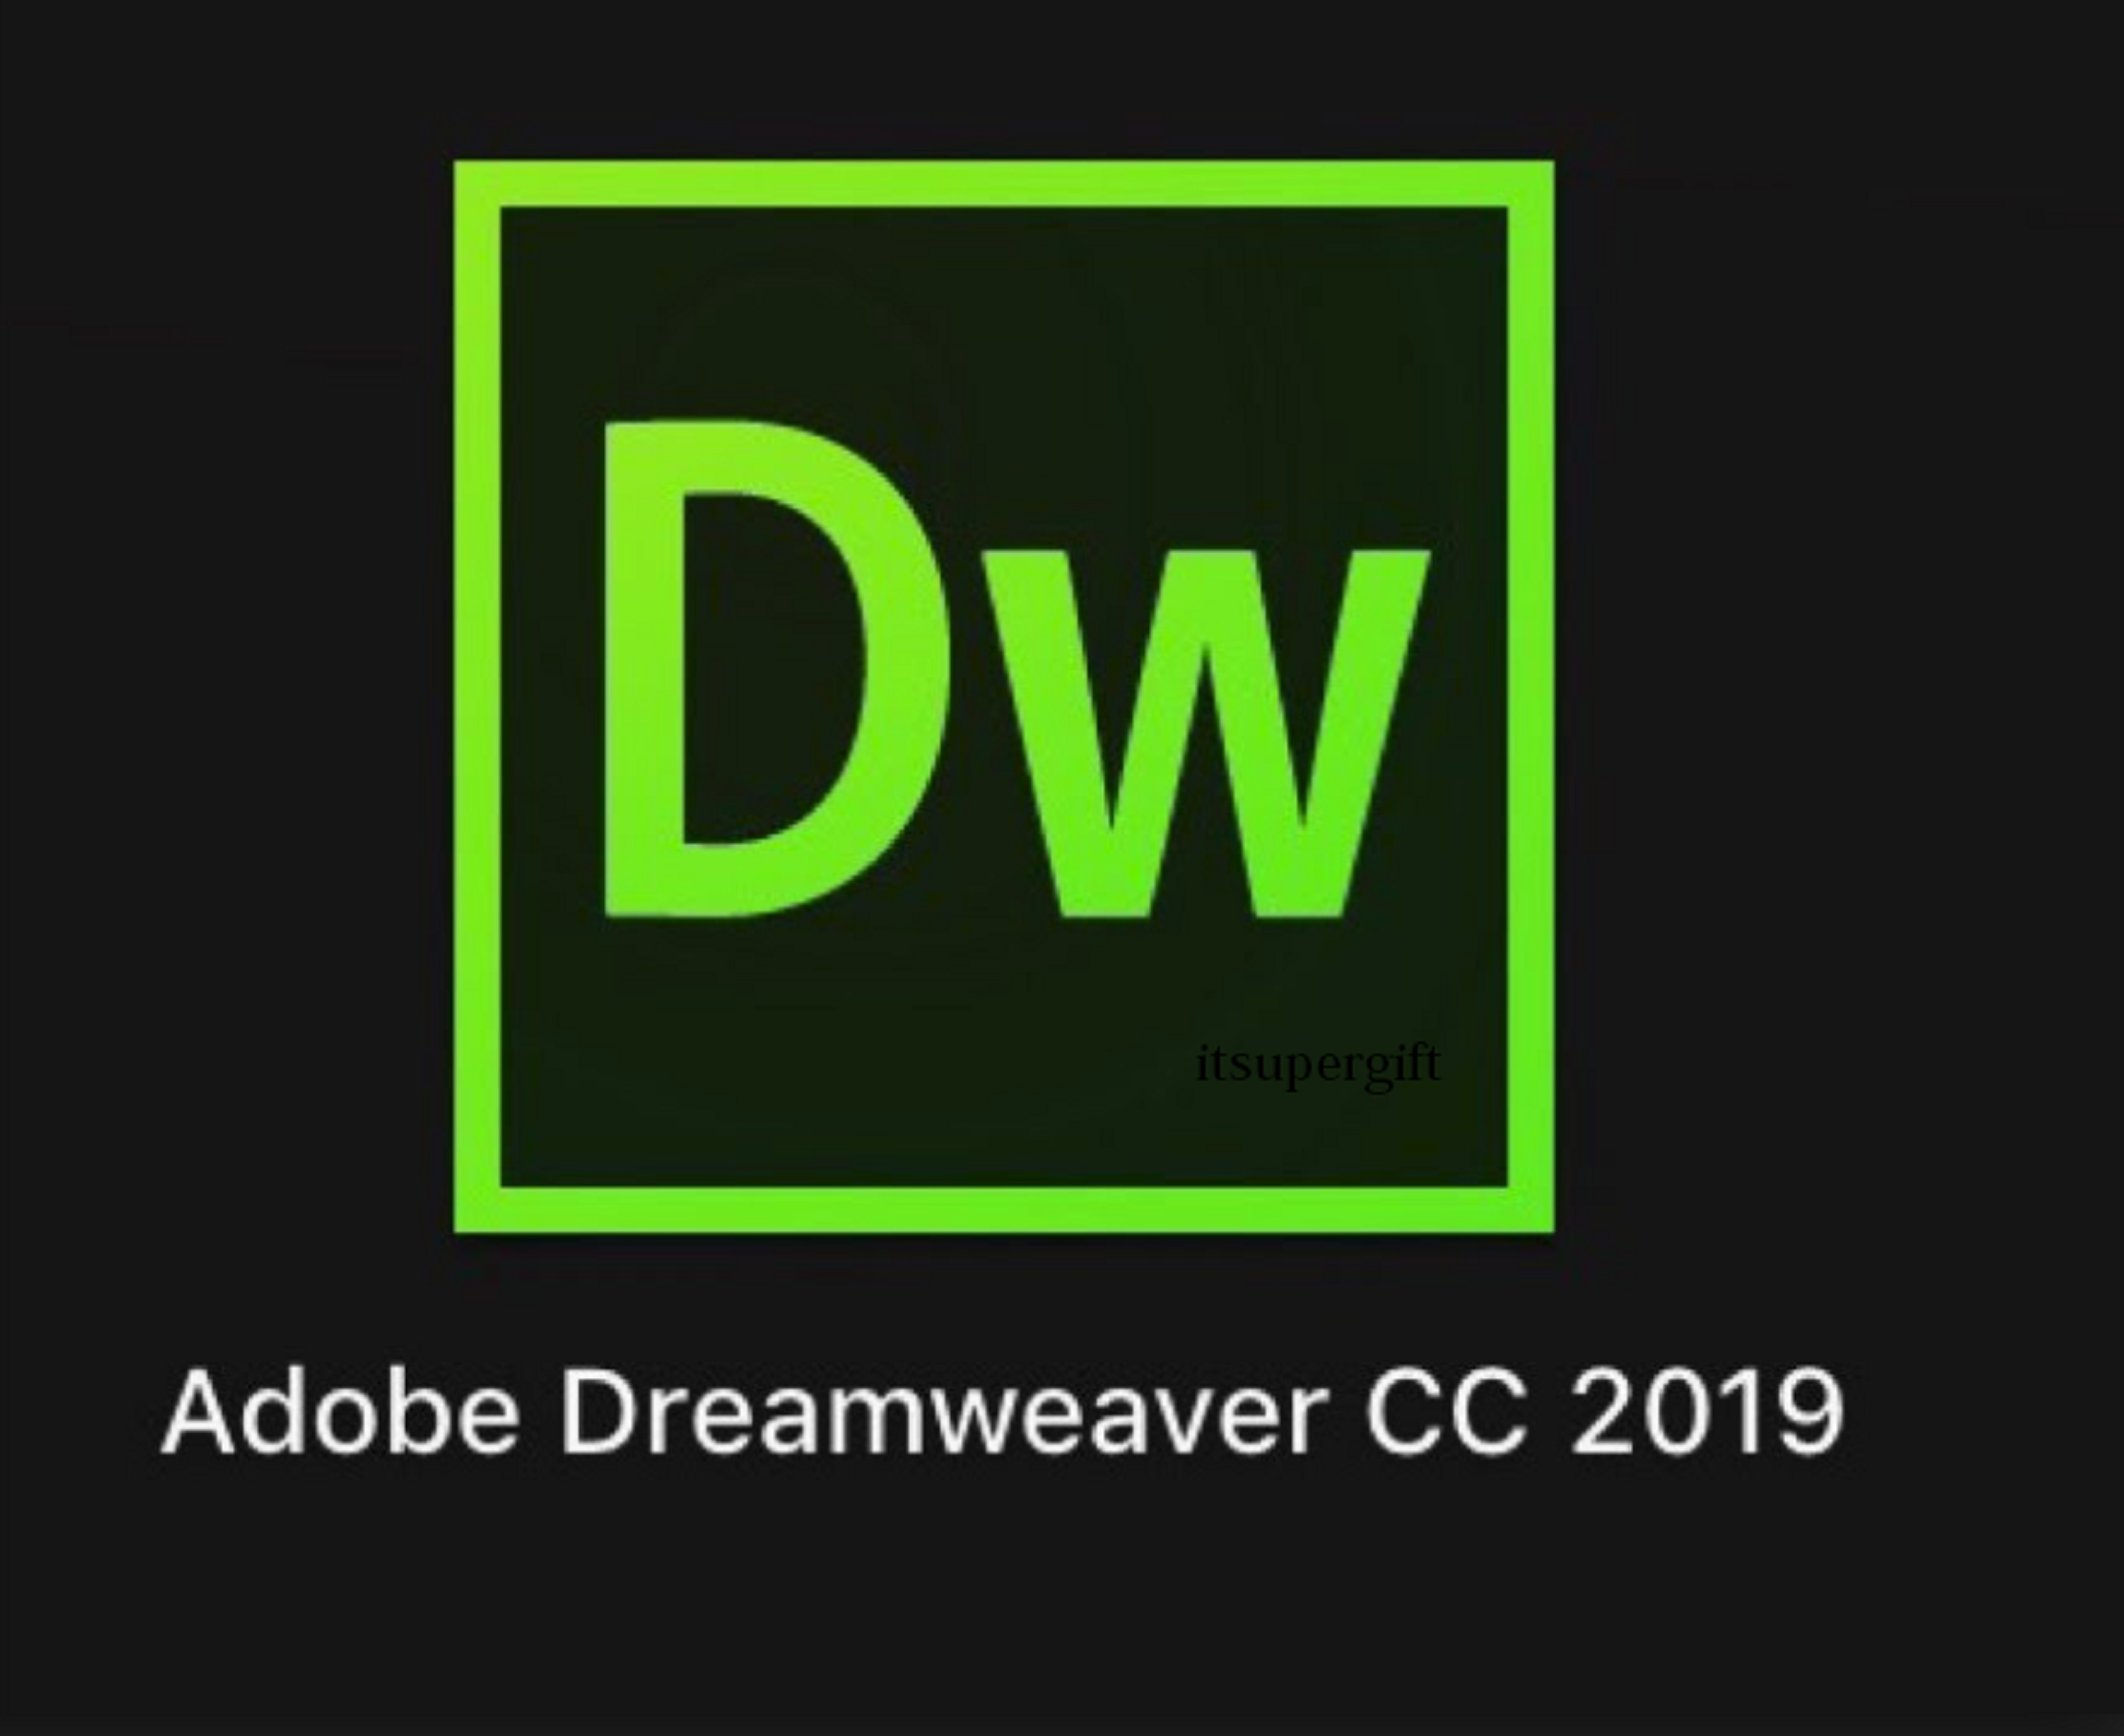 Adobe Dreamweaver Cc 2019 Is Free To Download From Our Software Library Responsive Websites Really Fast Dreamwe In 2020 Adobe Dreamweaver Dreamweaver Dreamweaver Cc